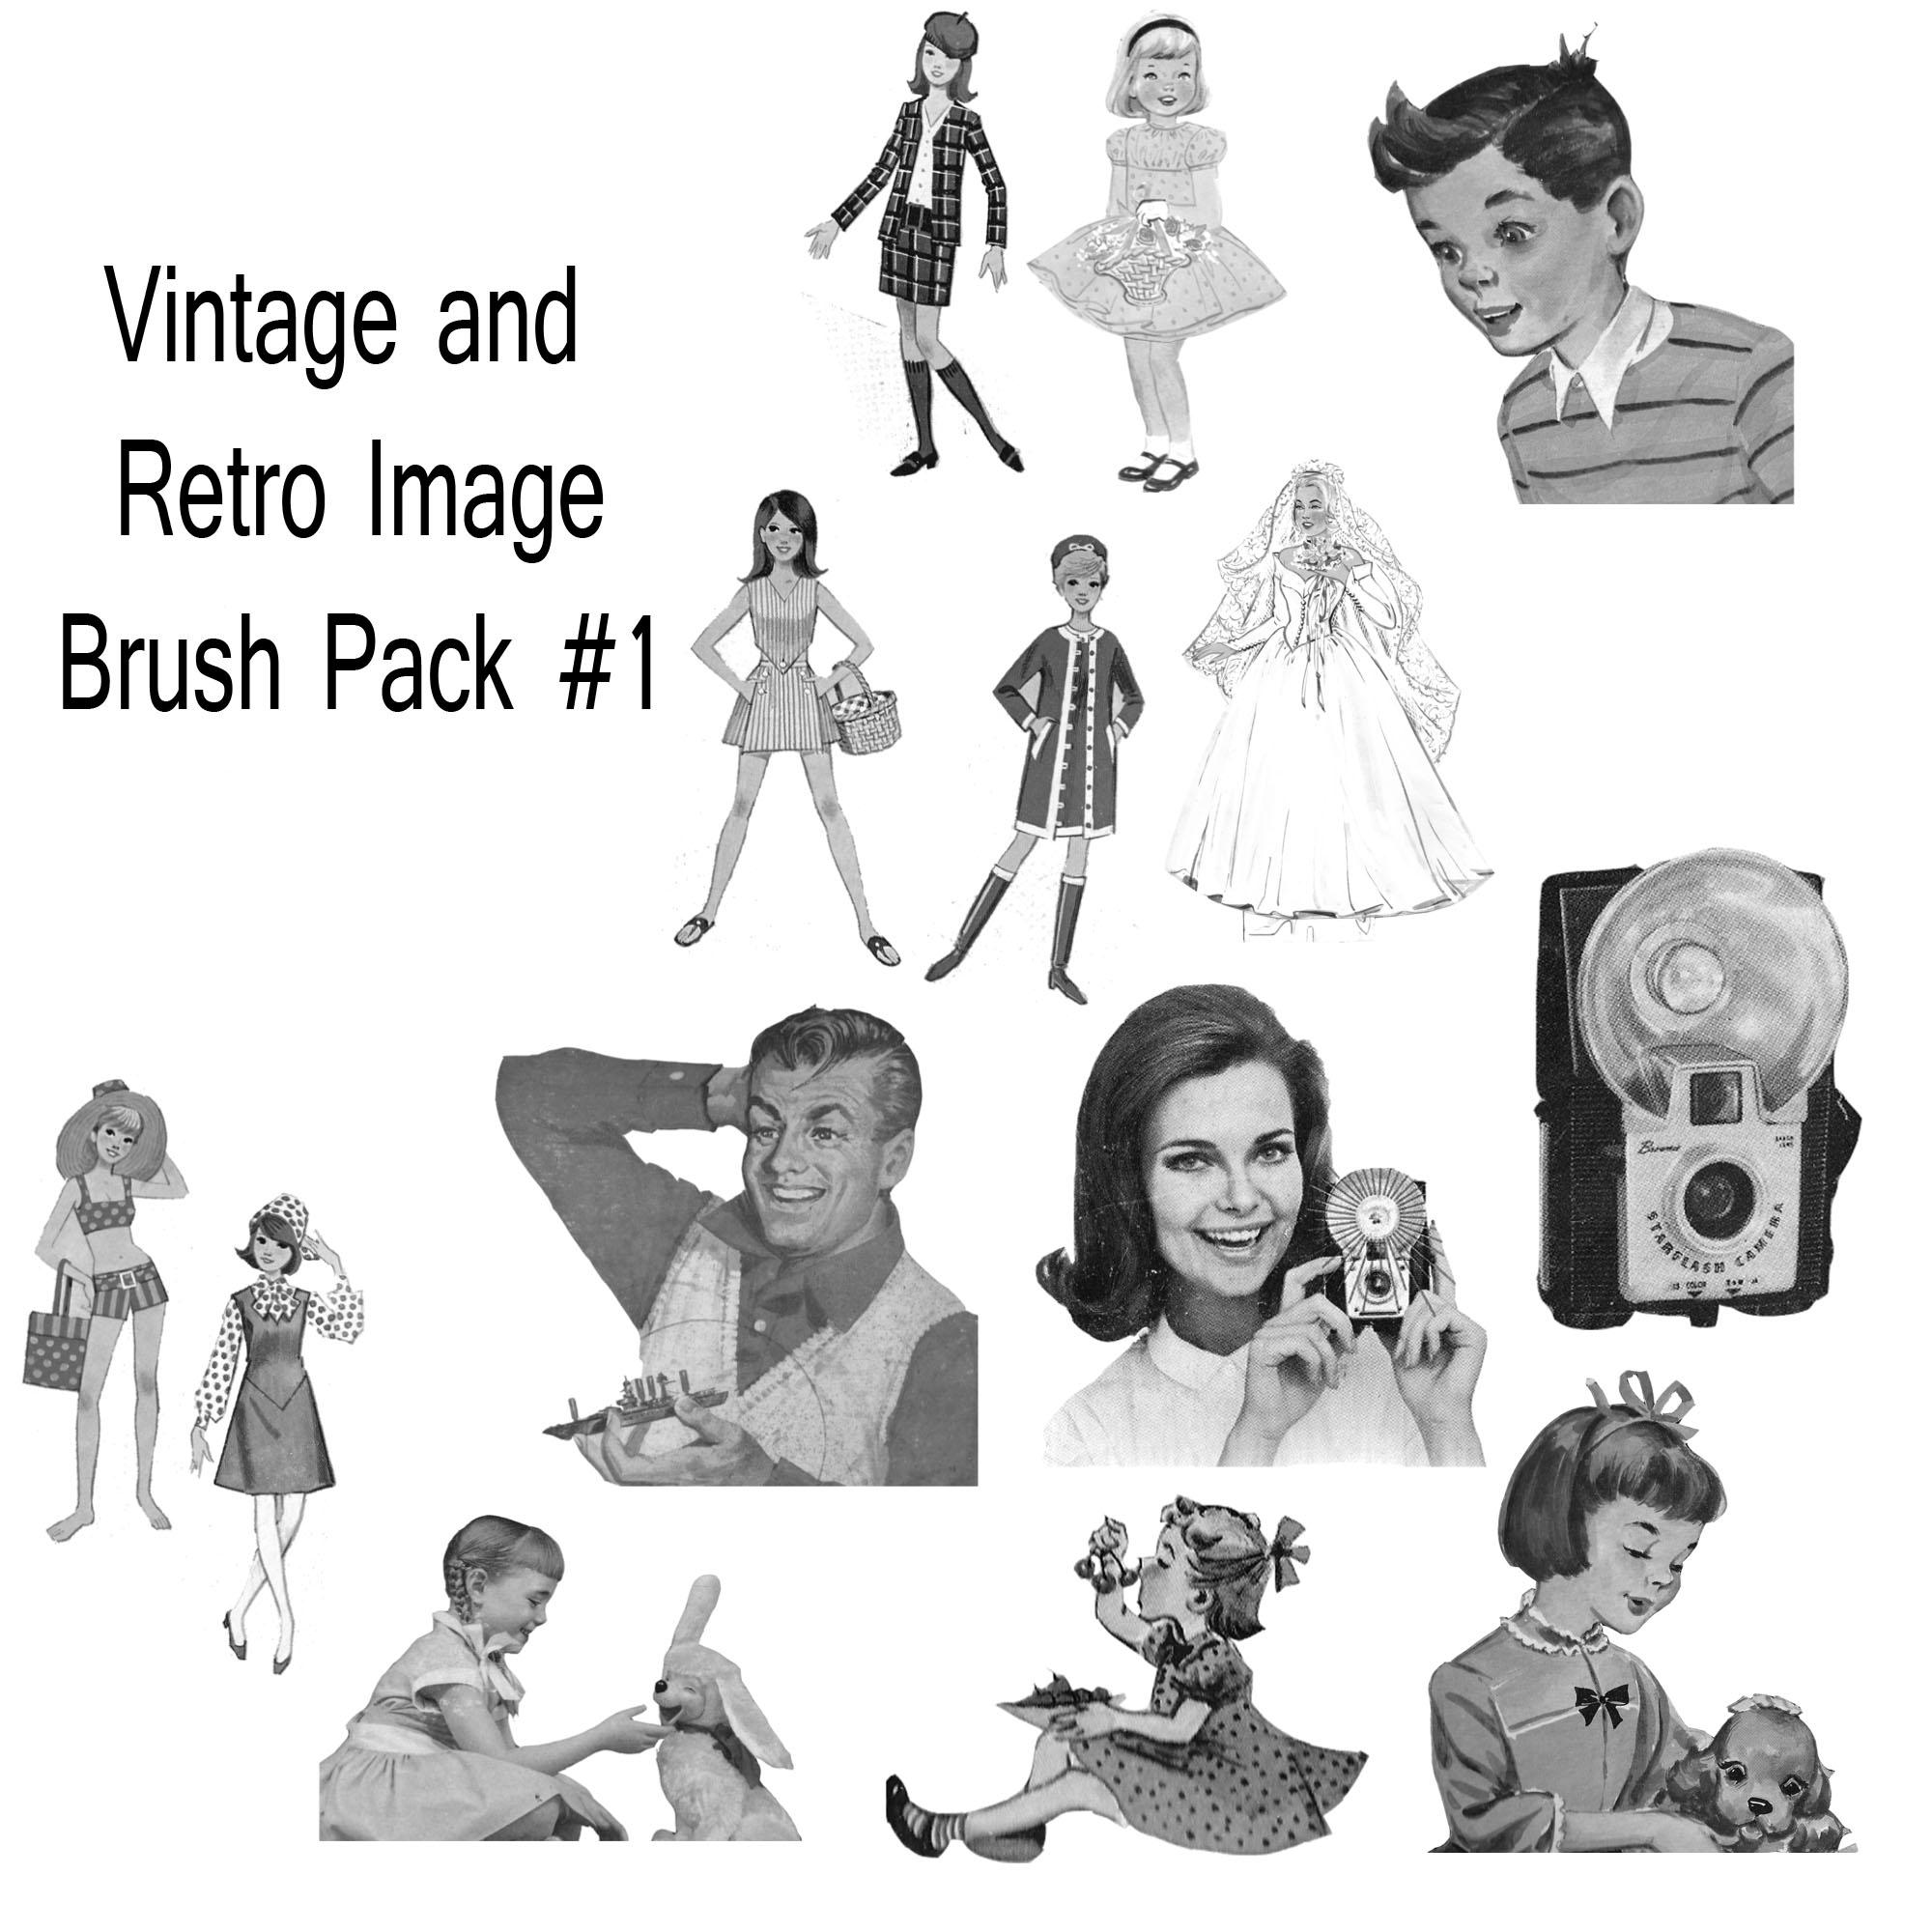 Retro And Vintage Brush Pack 1 By Jonathanhasenfus On